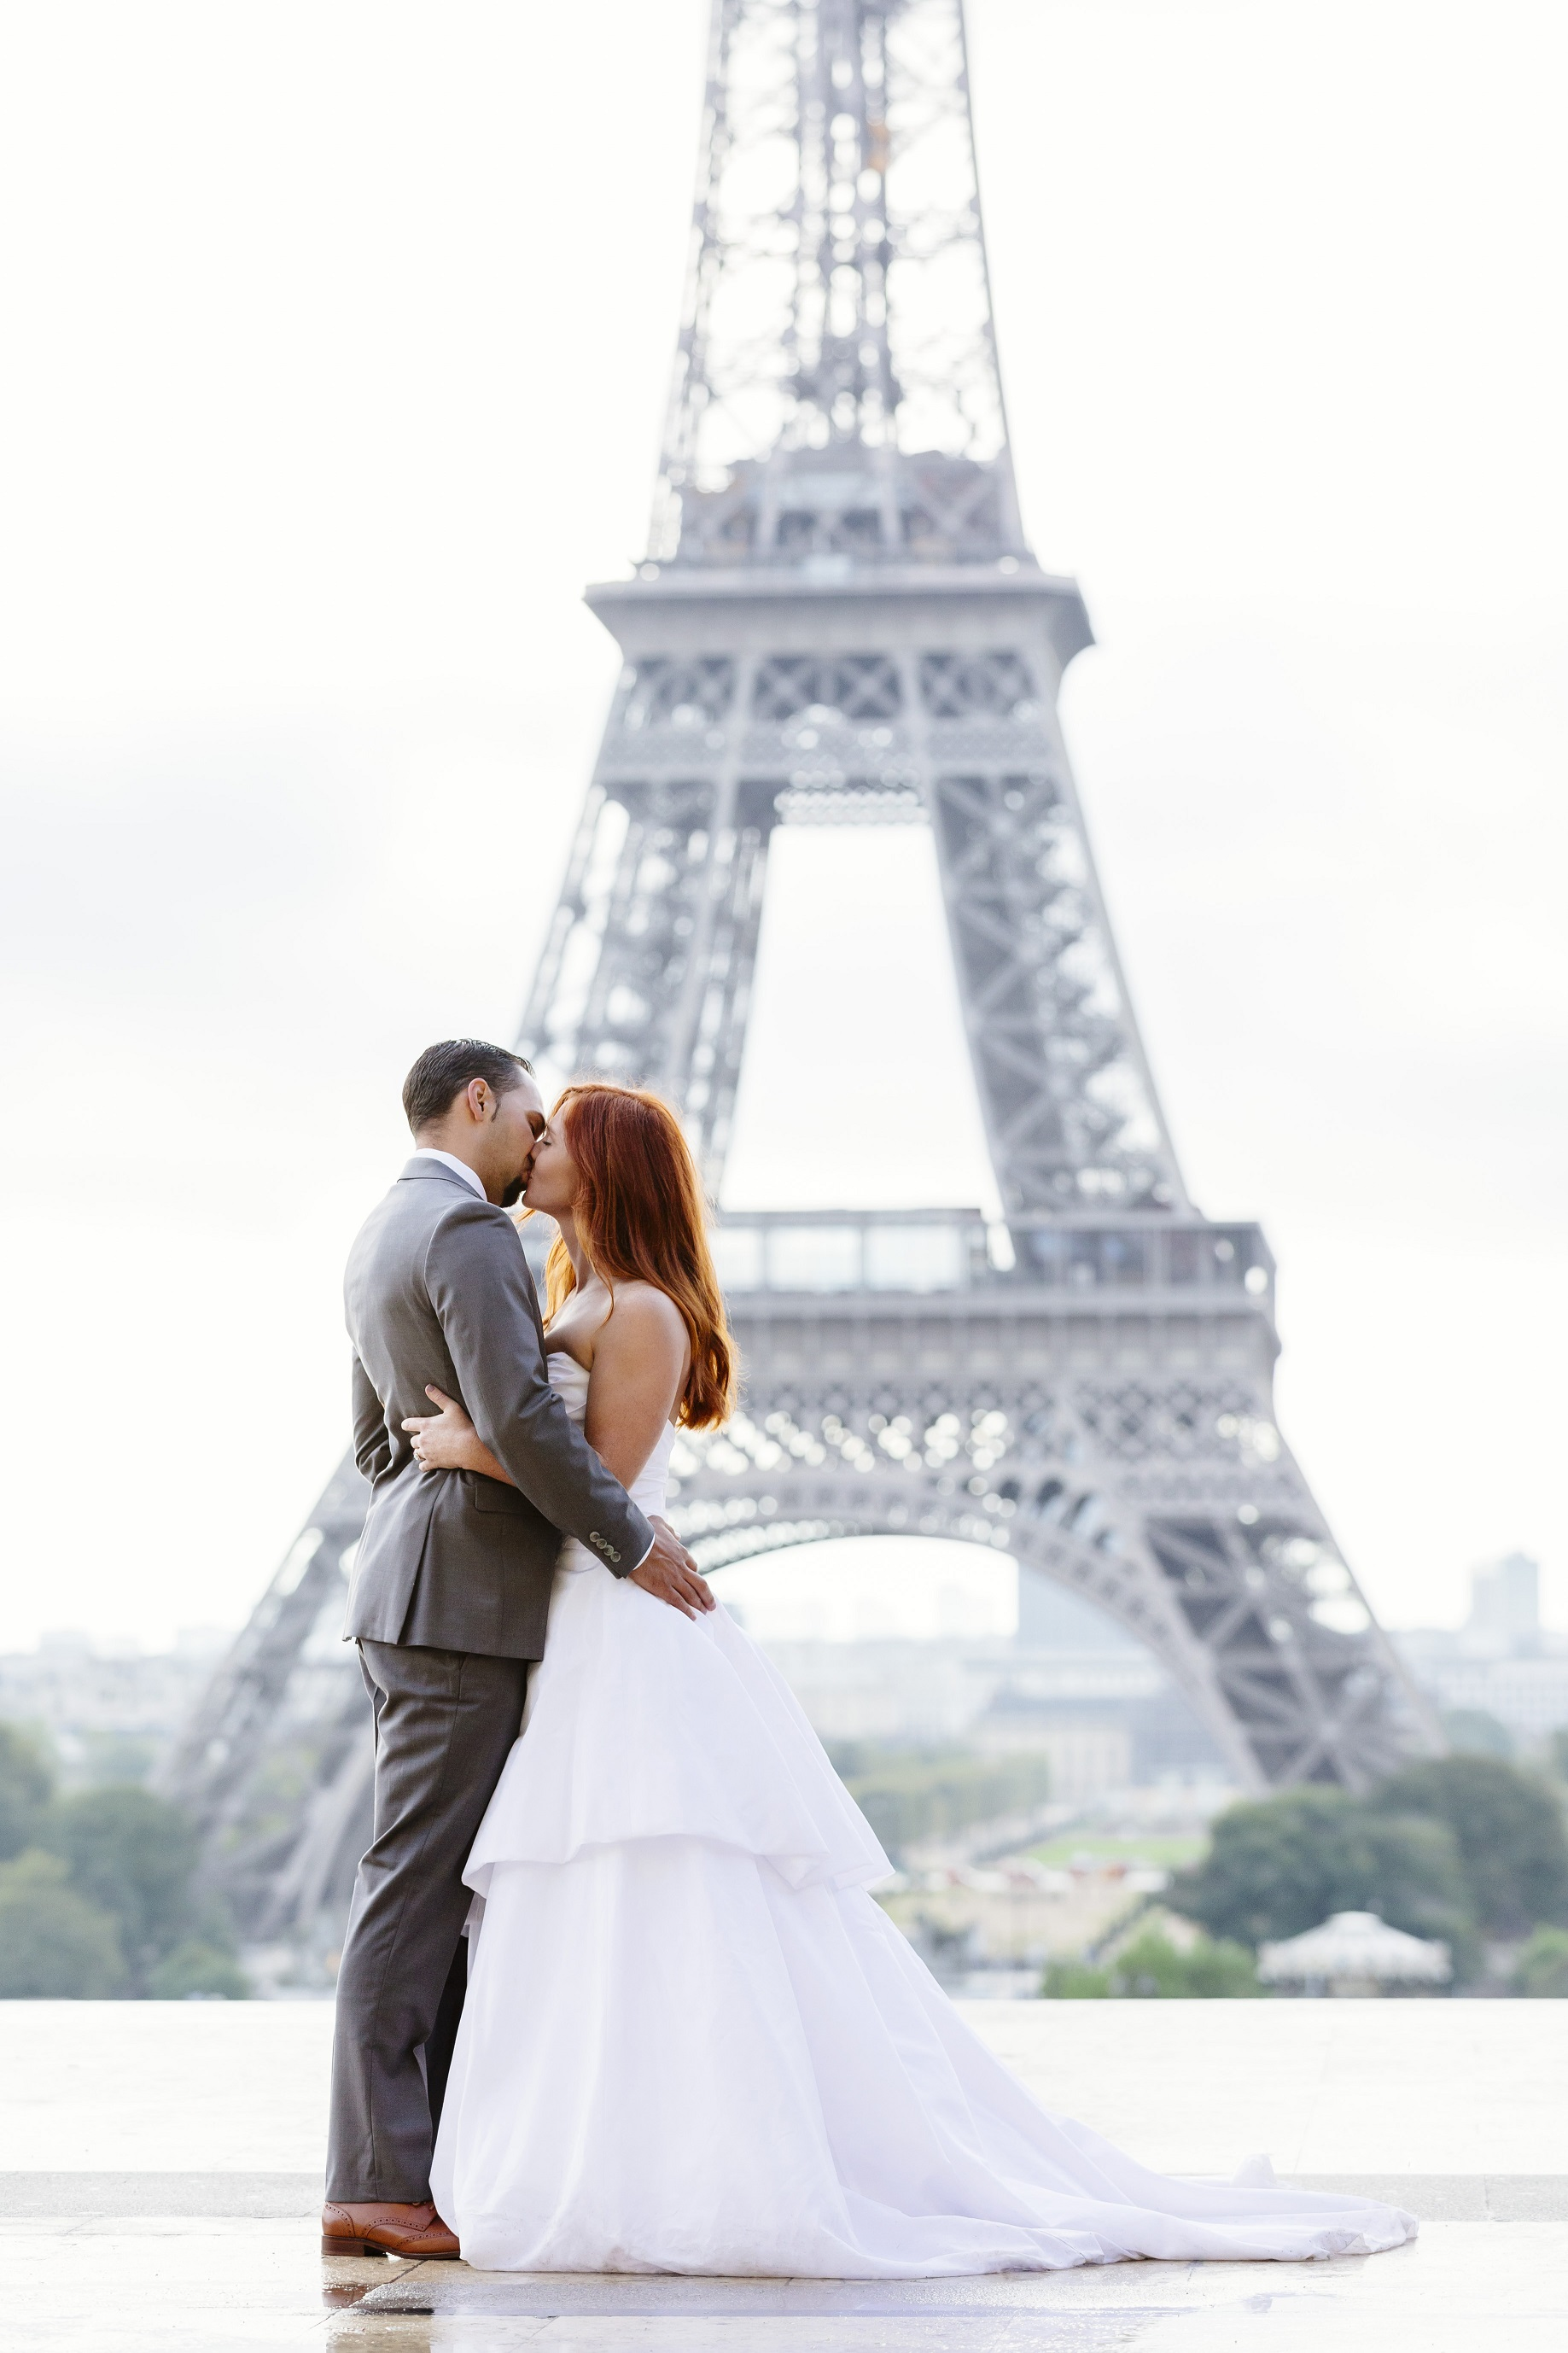 Bride Emily and Groom TJ kiss in front of the Eiffel Tower.